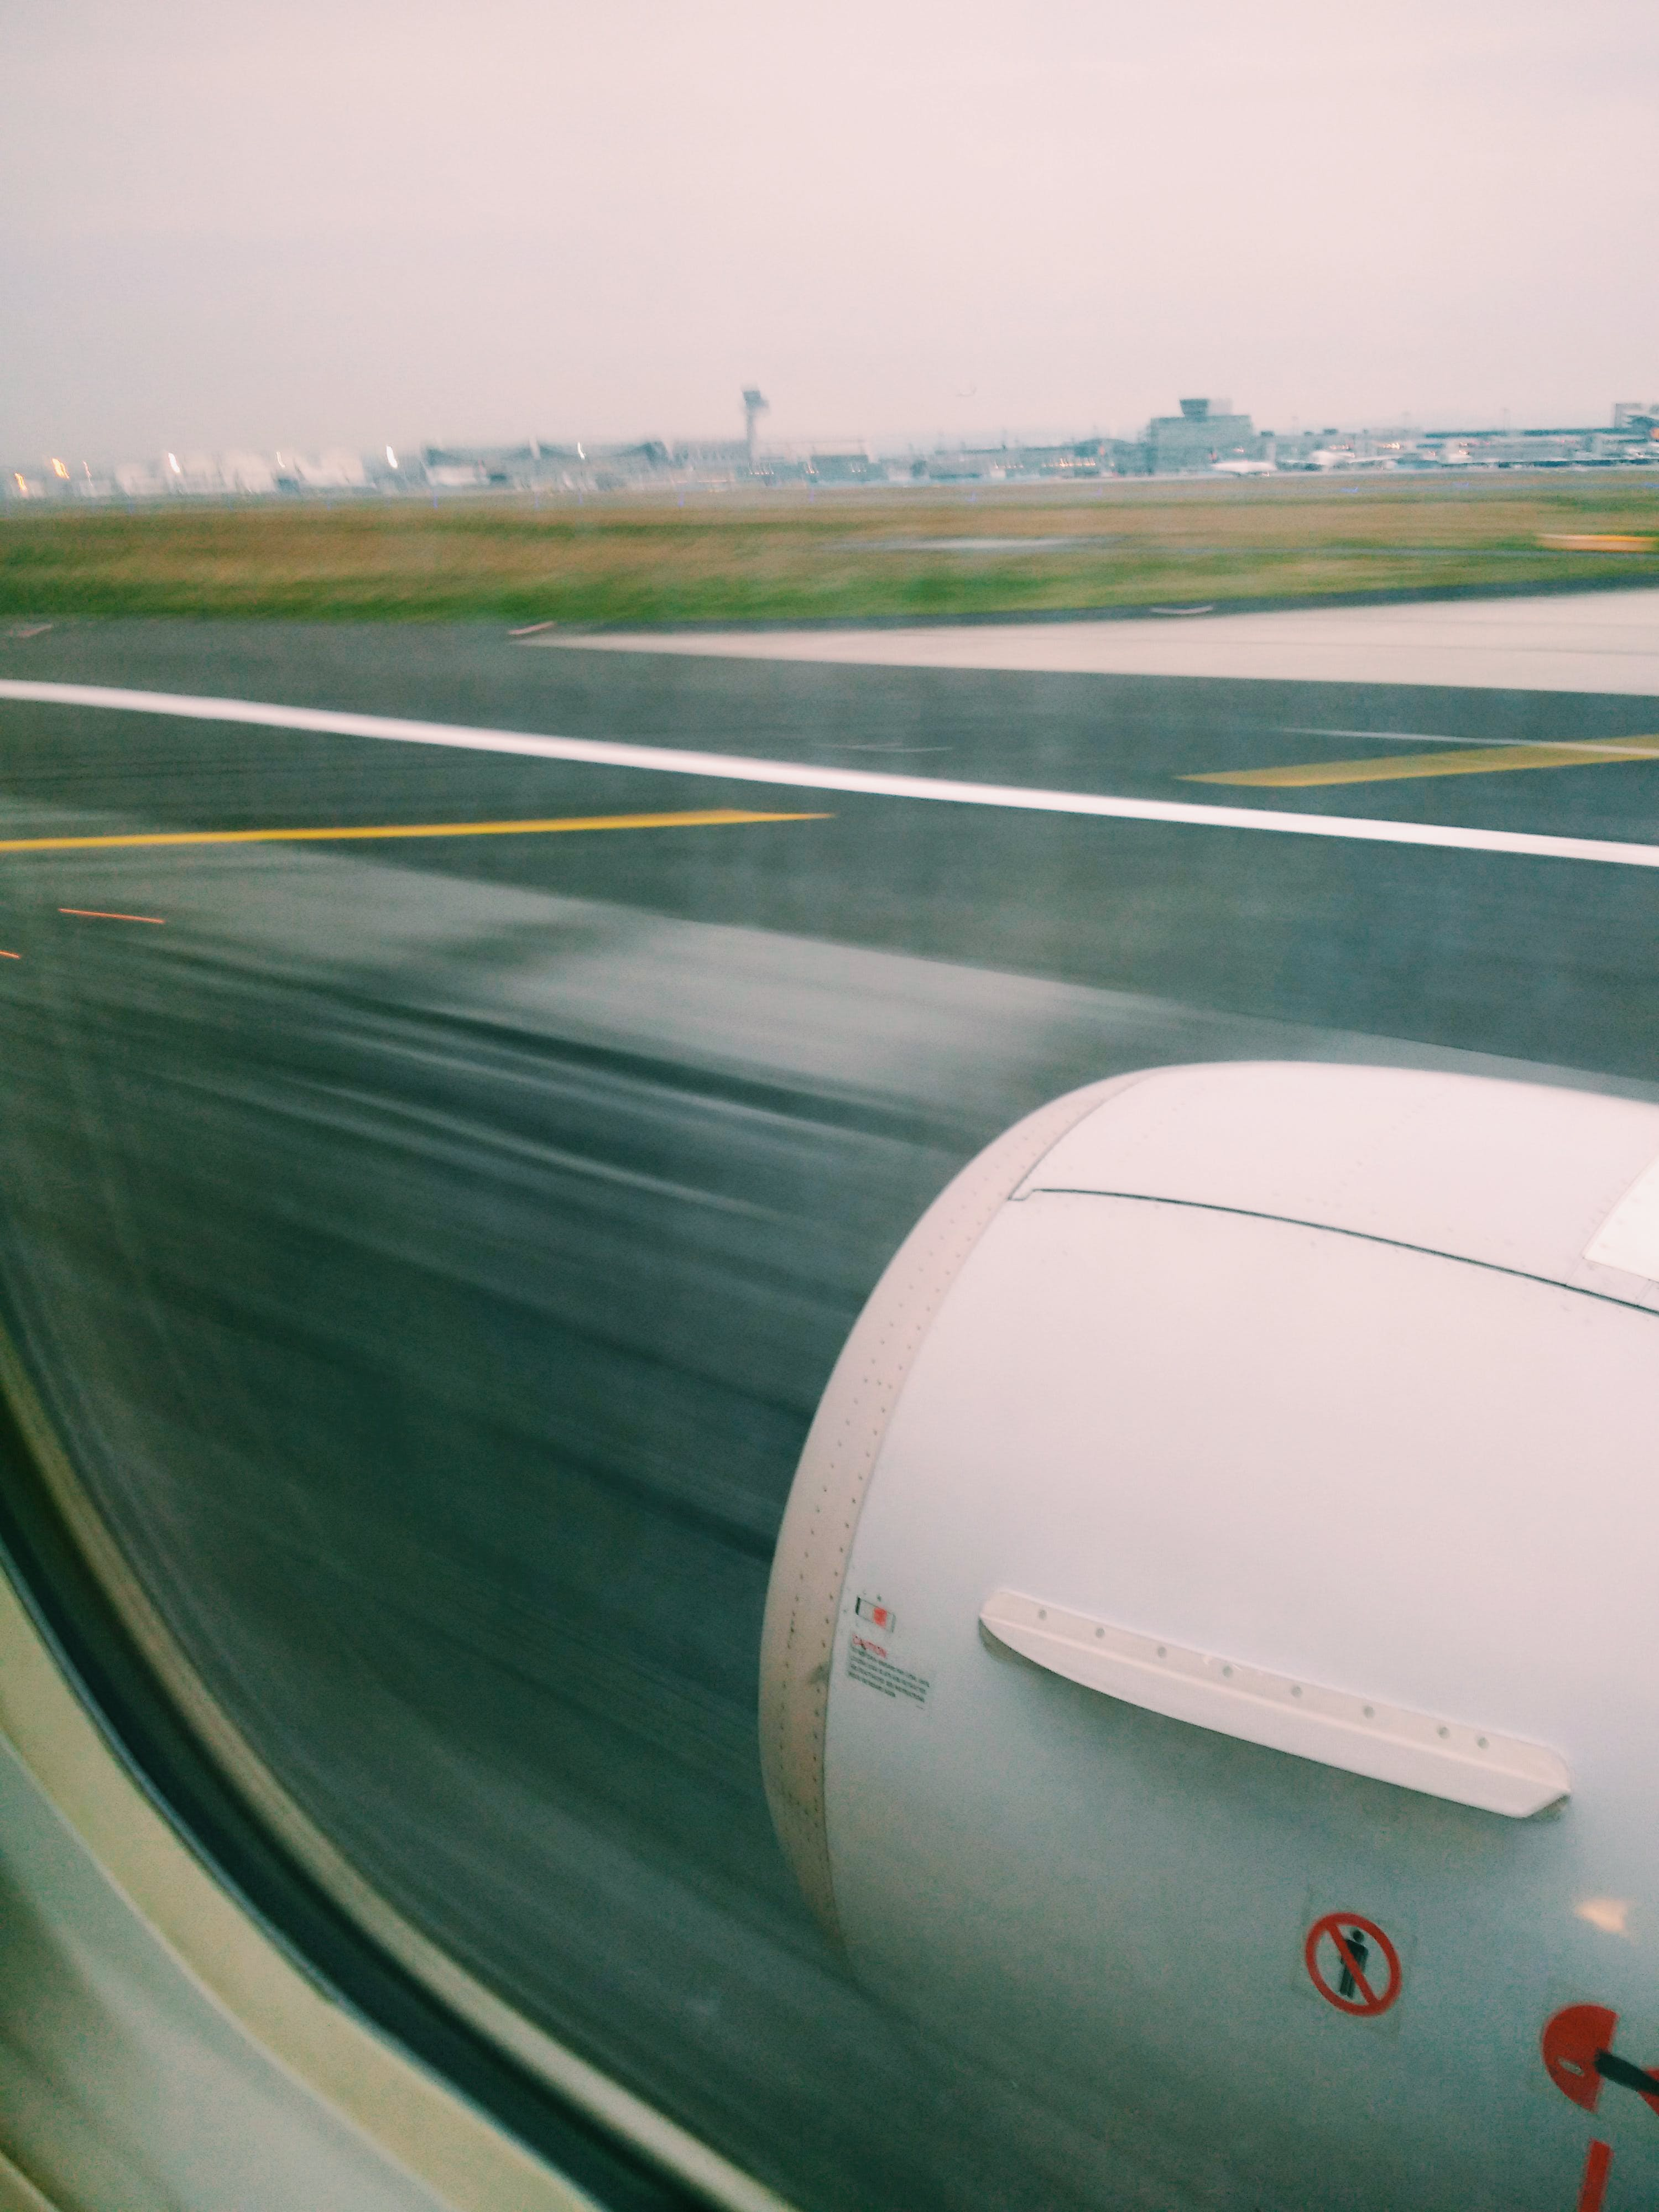 Free stock photo of aircraft, airport, cdg, engine